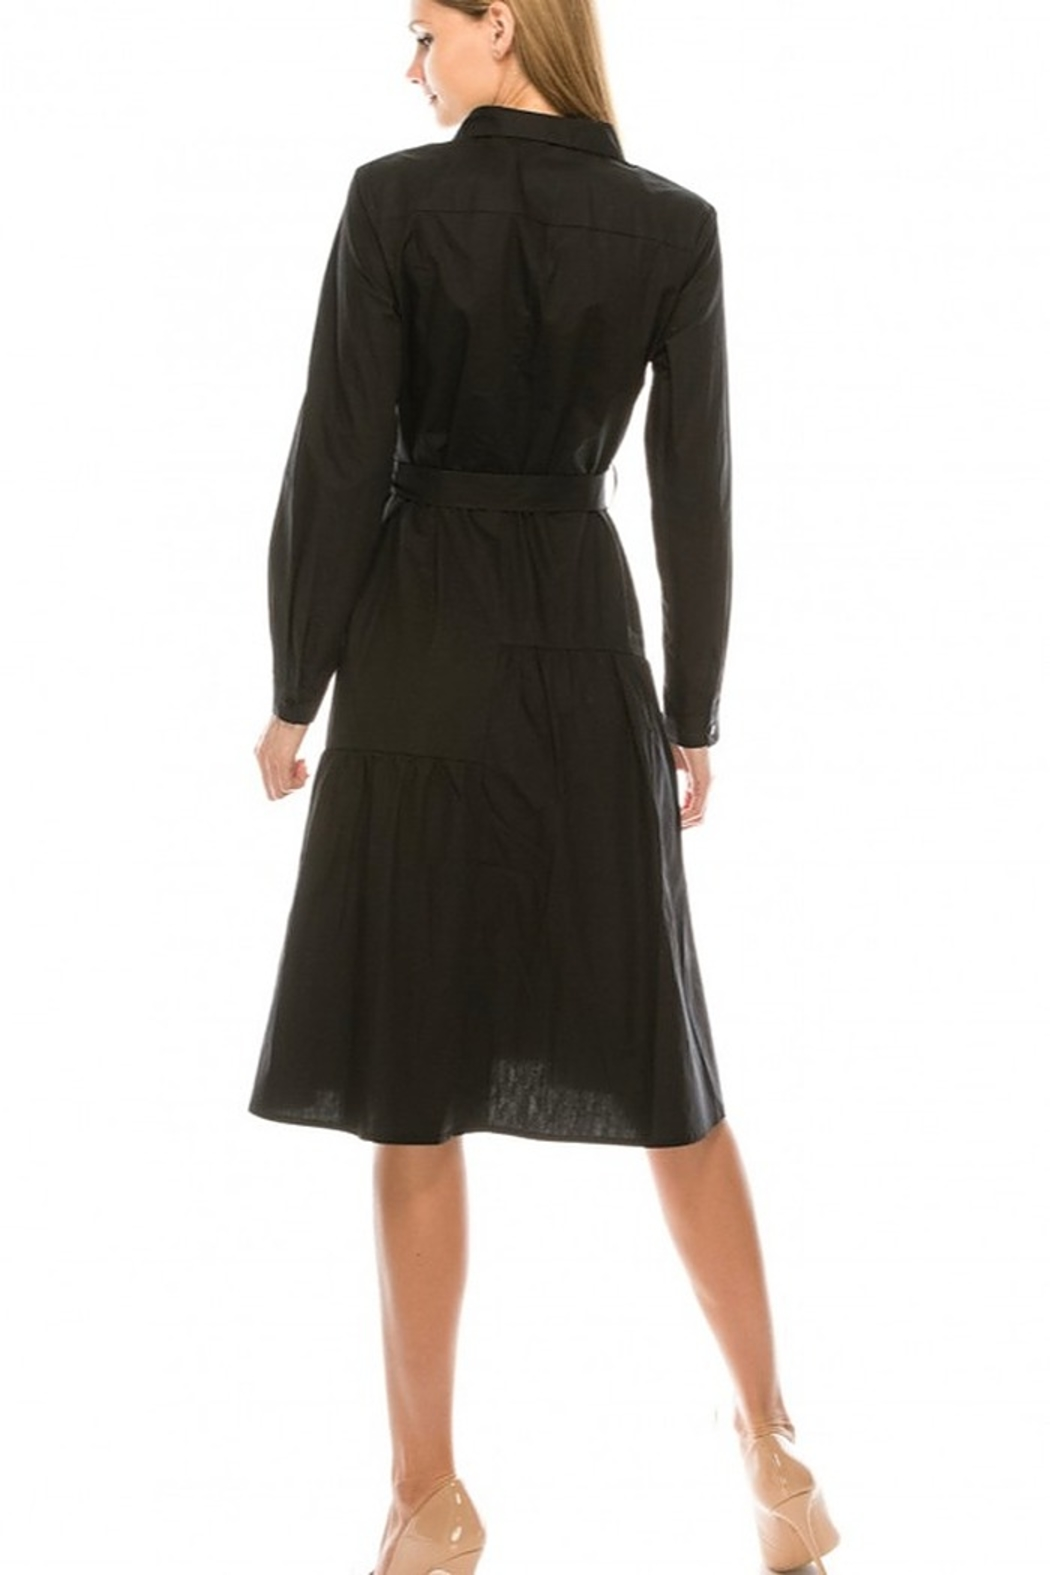 Yal NY Button down shirt dress with belt - Side Cropped Image